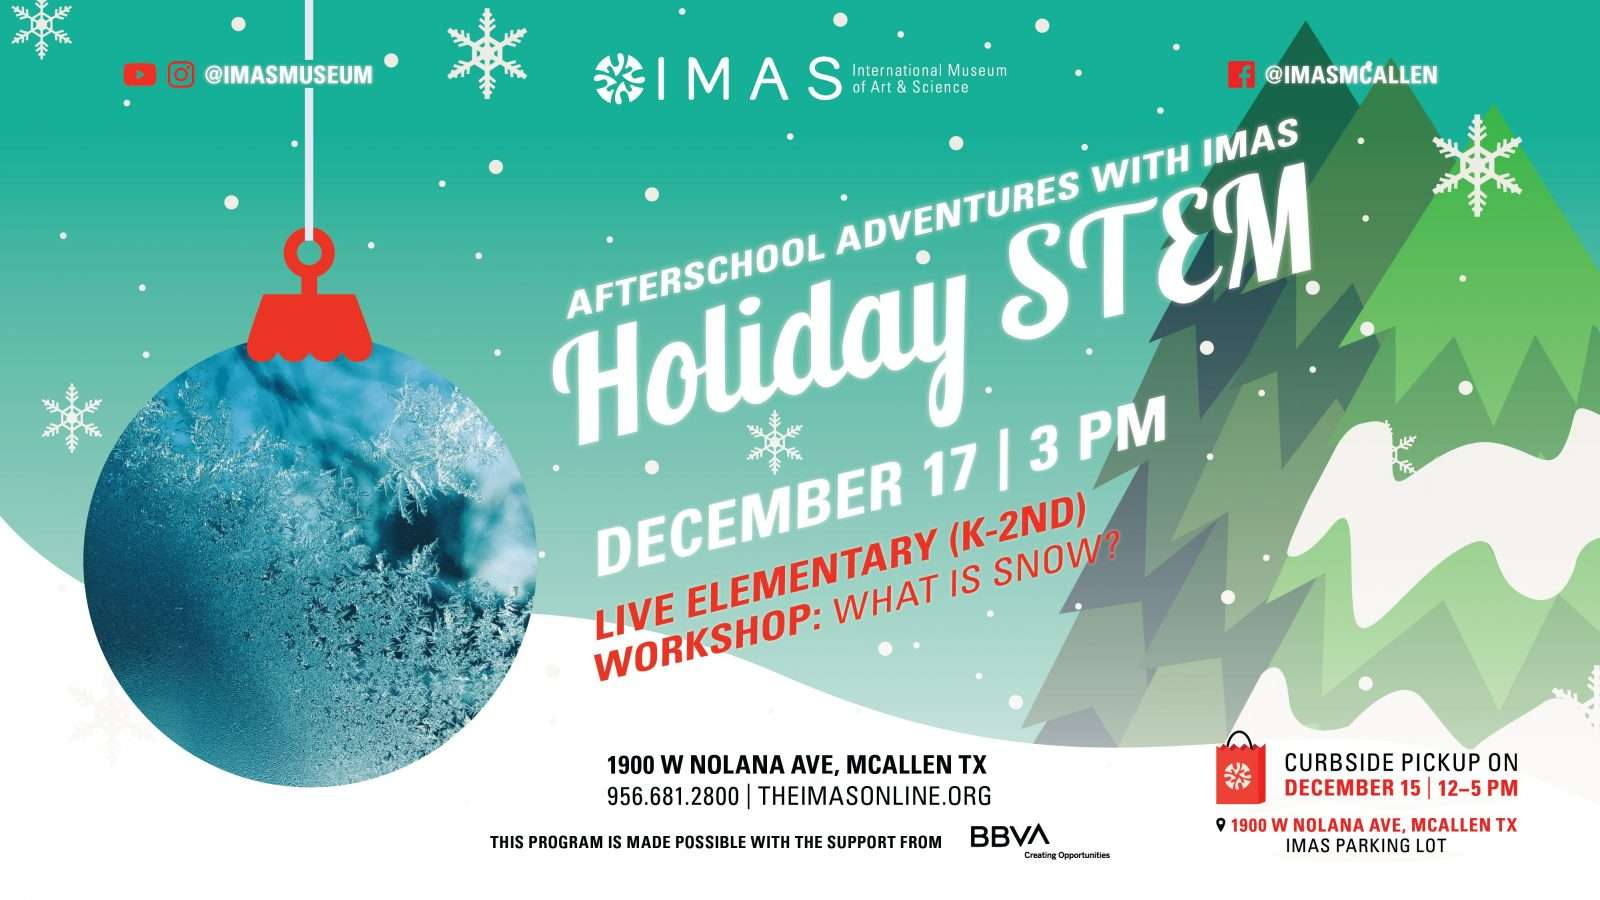 Holiday STEM workshop for Elementary K-2nd grade